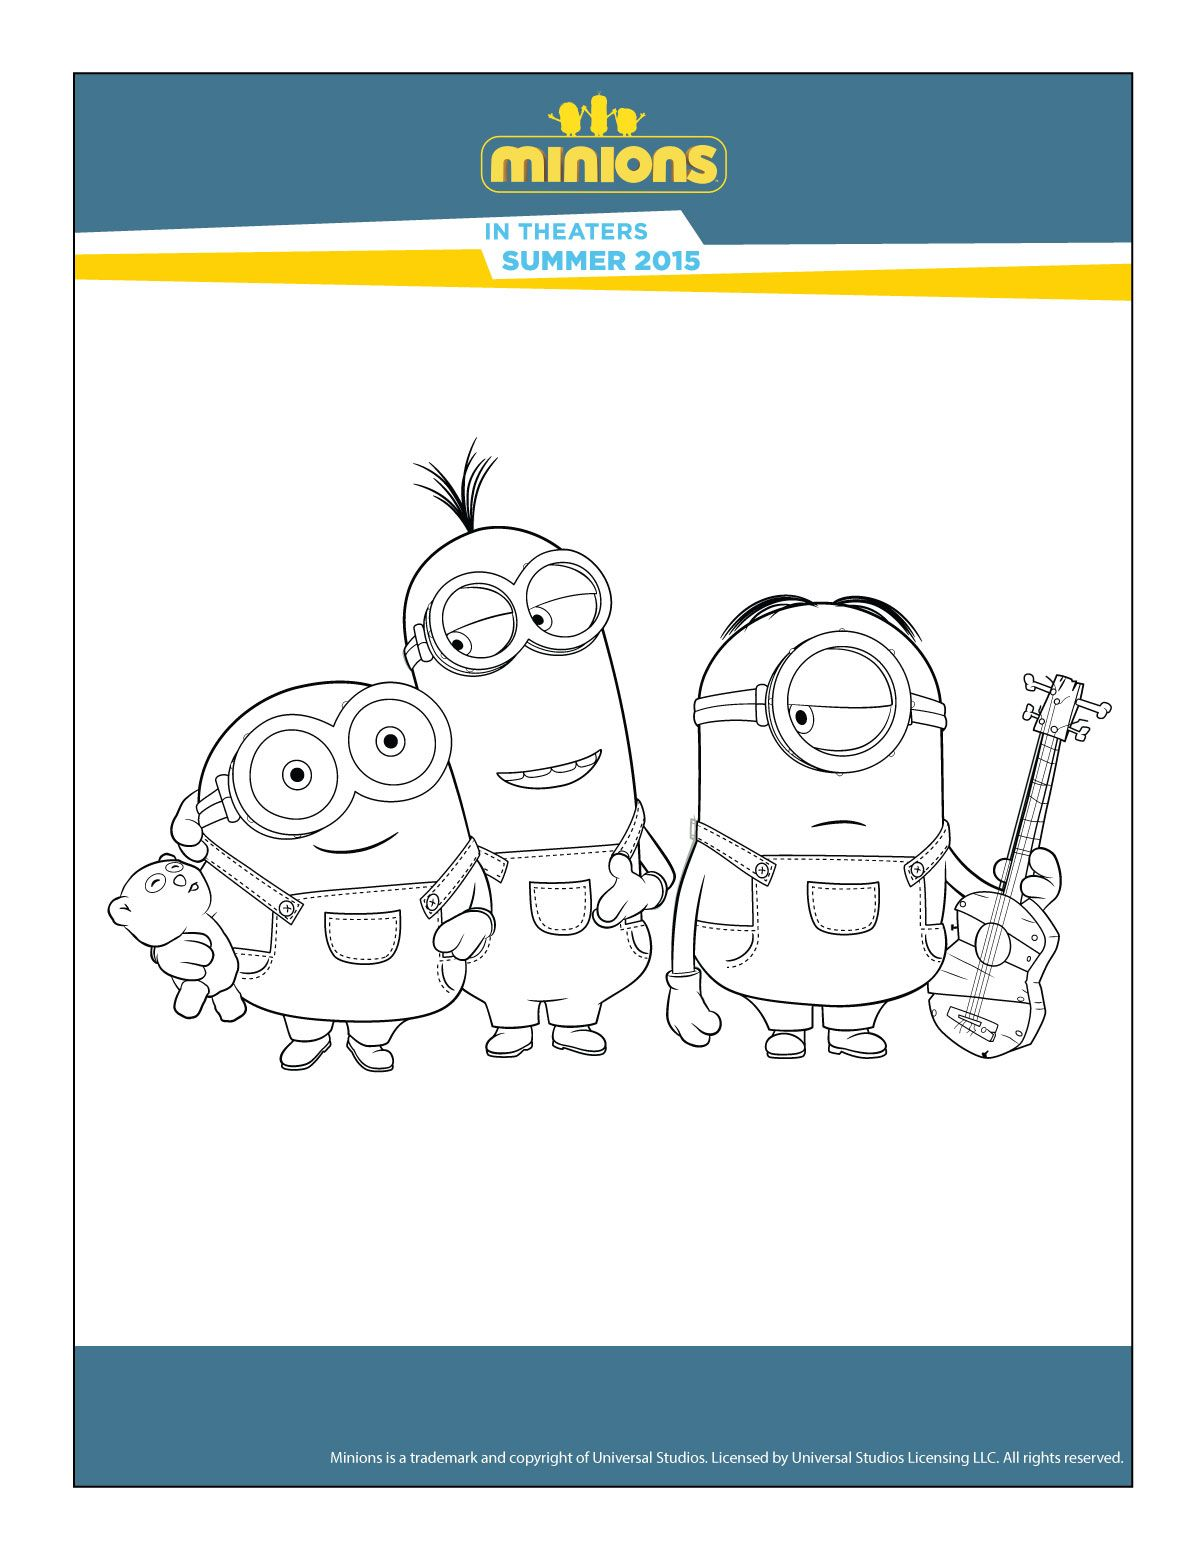 Play Fun Games Minions Minion Coloring Pages Goodies Maze Plays Art Drawings Home Ideas Treats